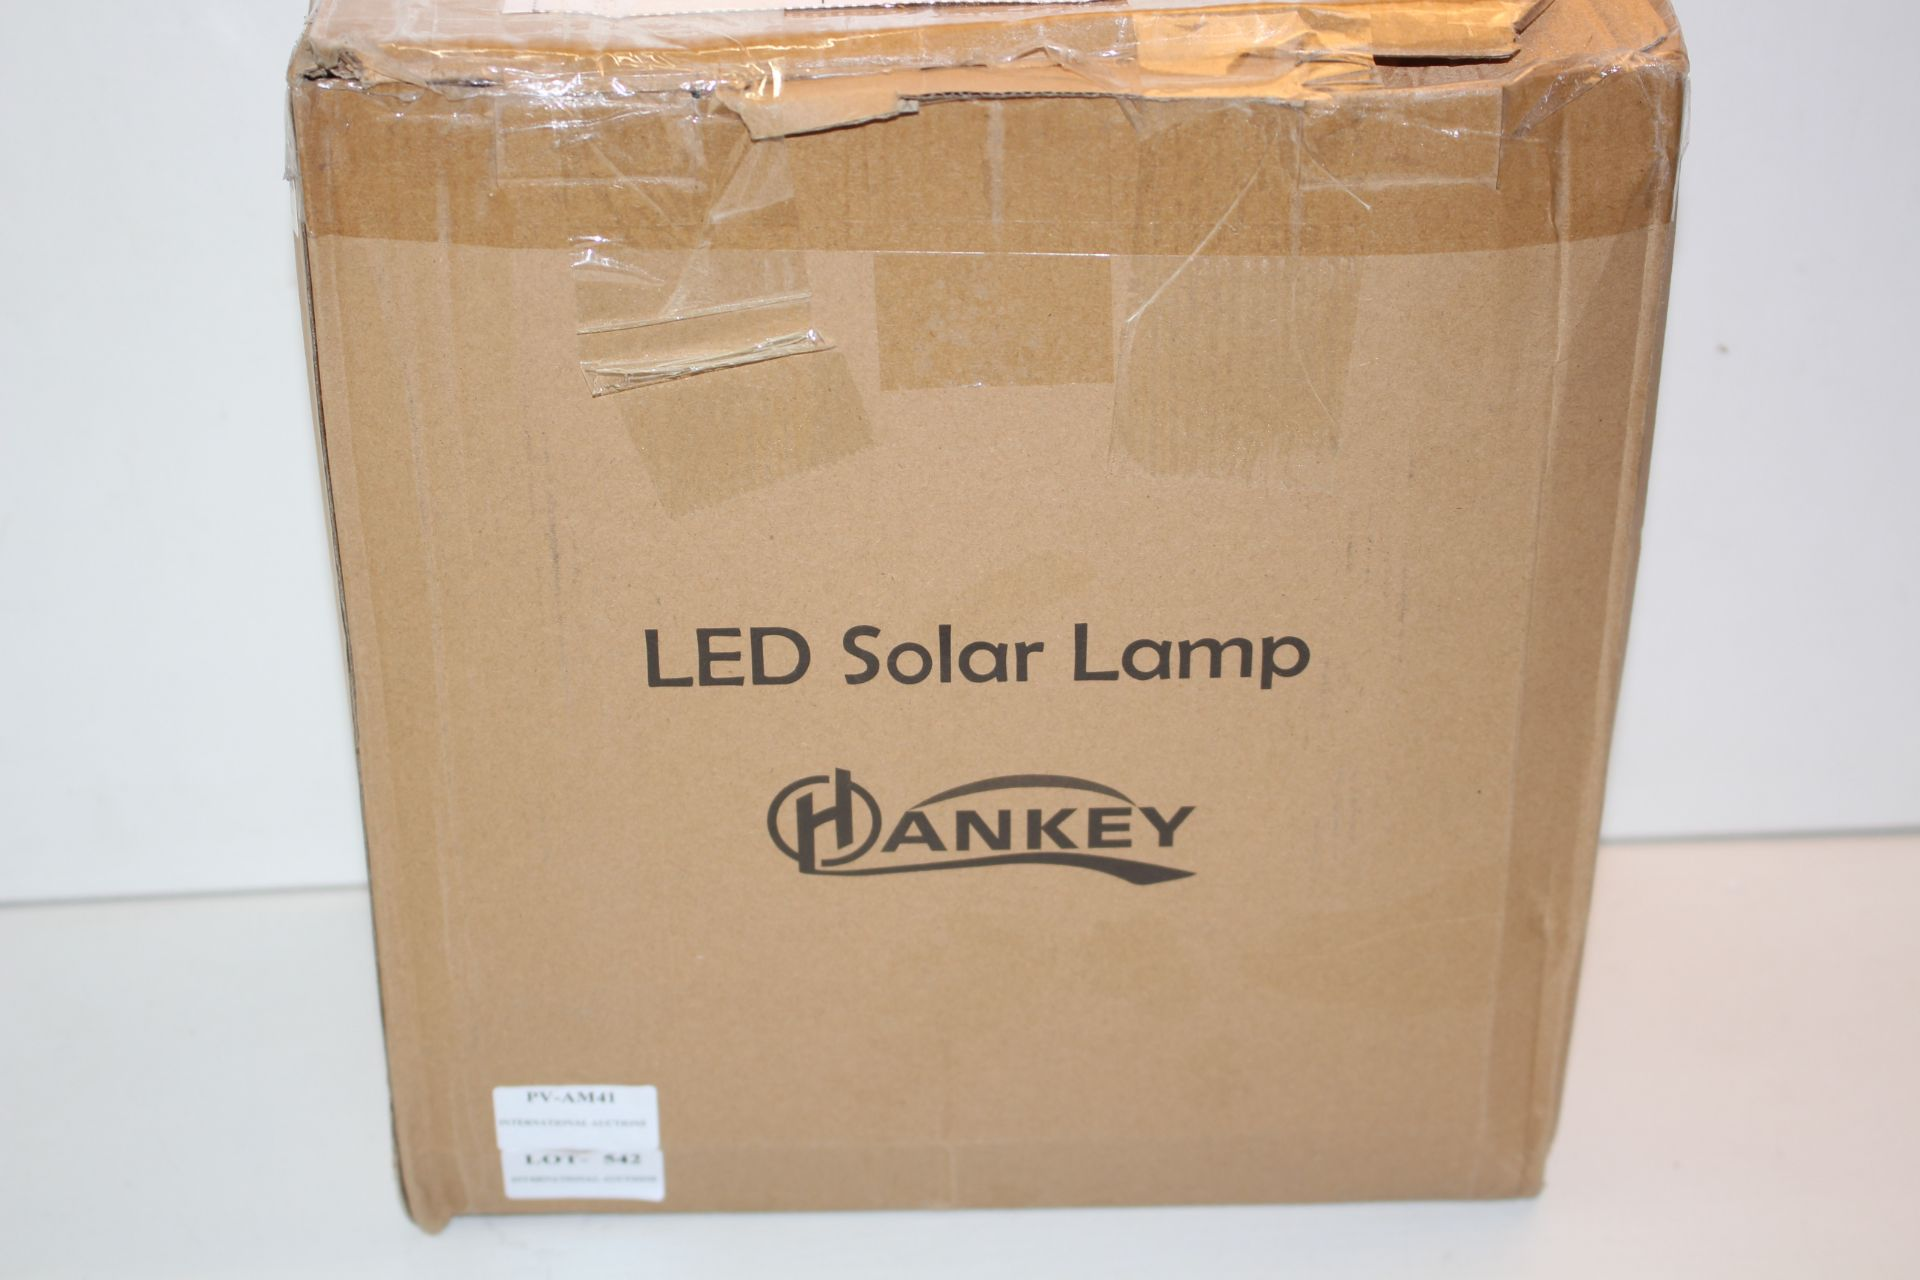 BOXED HANKEY LED SOLAR LAMPCondition ReportAppraisal Available on Request- All Items are Unchecked/